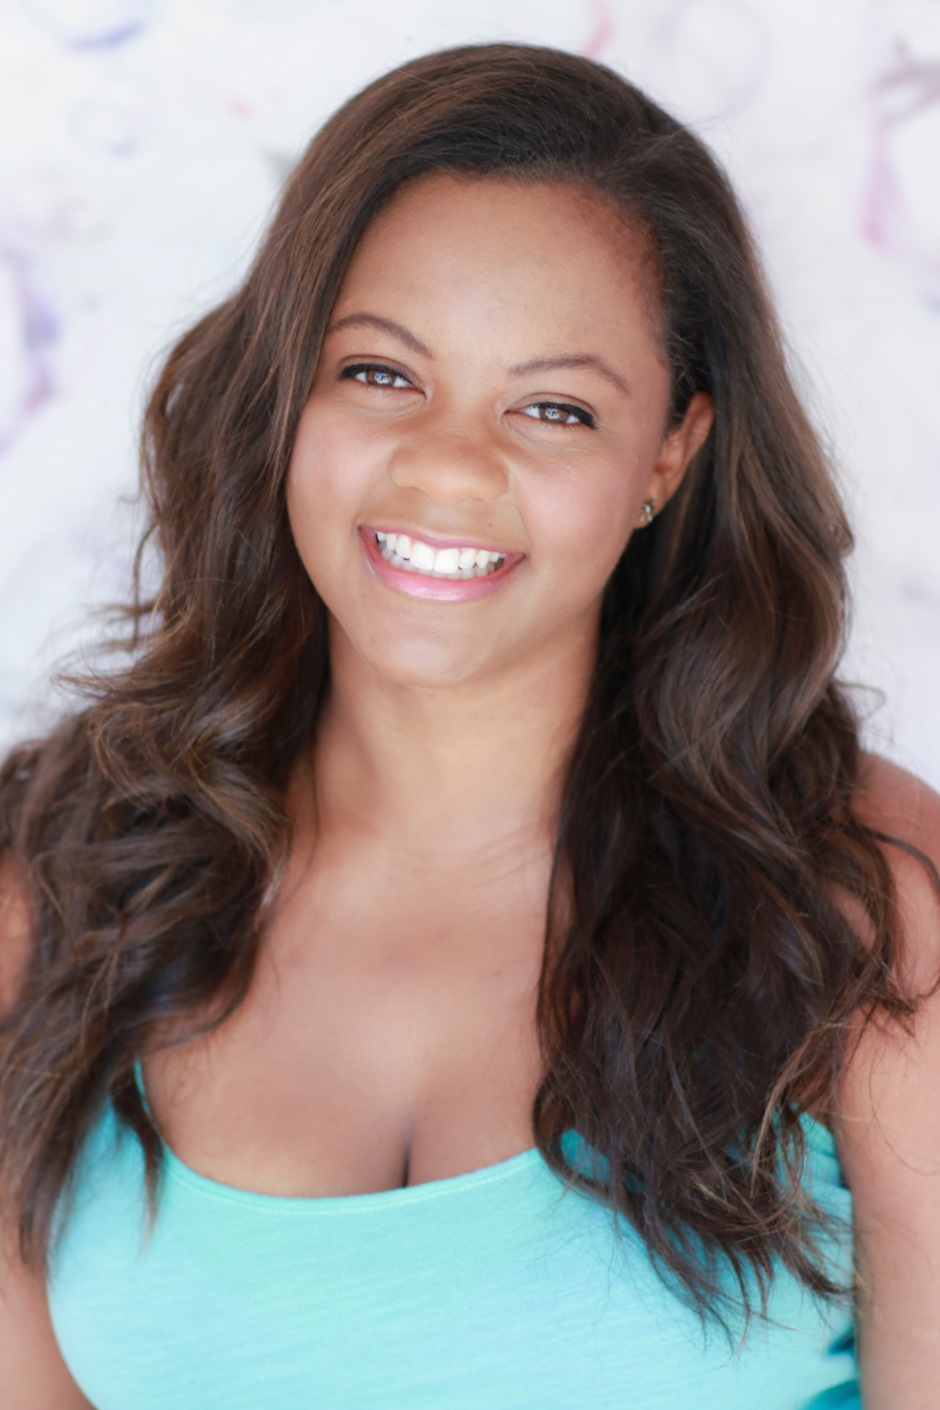 Keri Bruner beautiful teeth commercial headshot